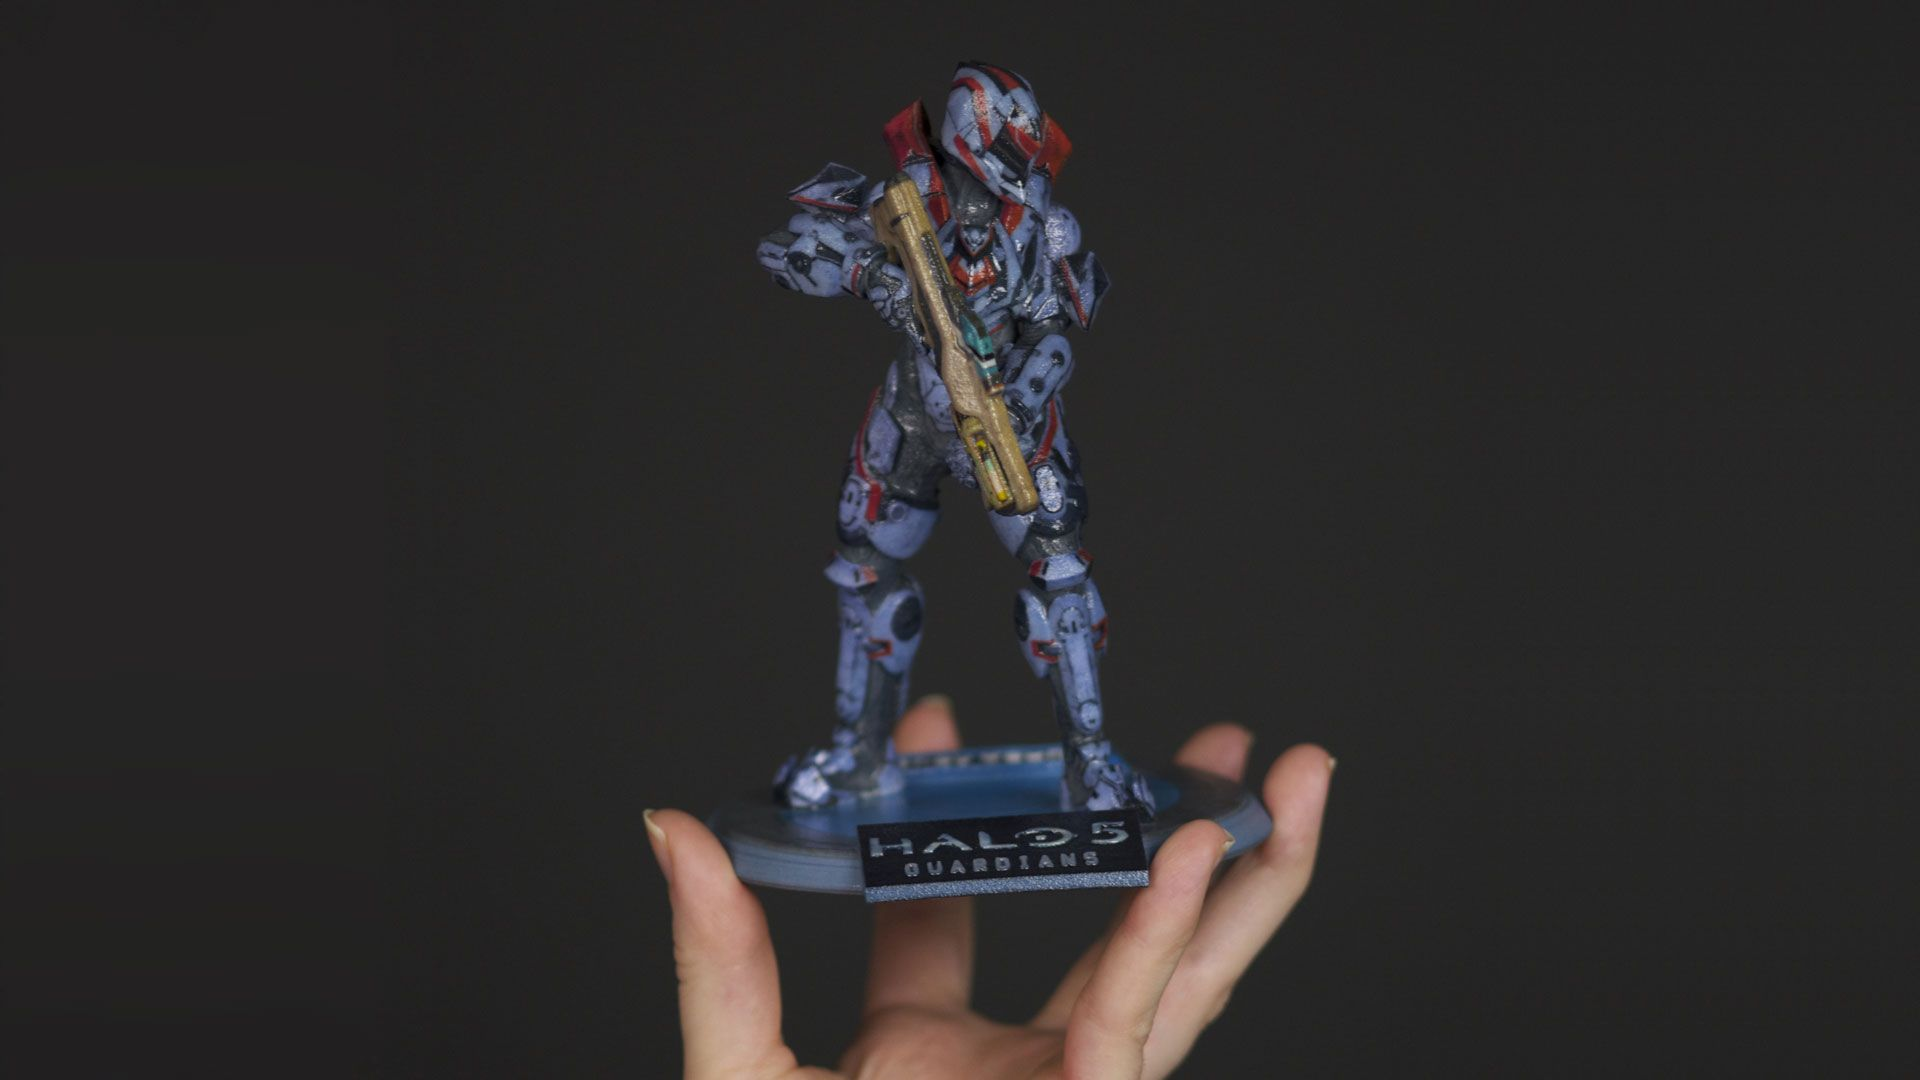 News  You Can Turn Your Halo 5 Spartan To A 3d Printed